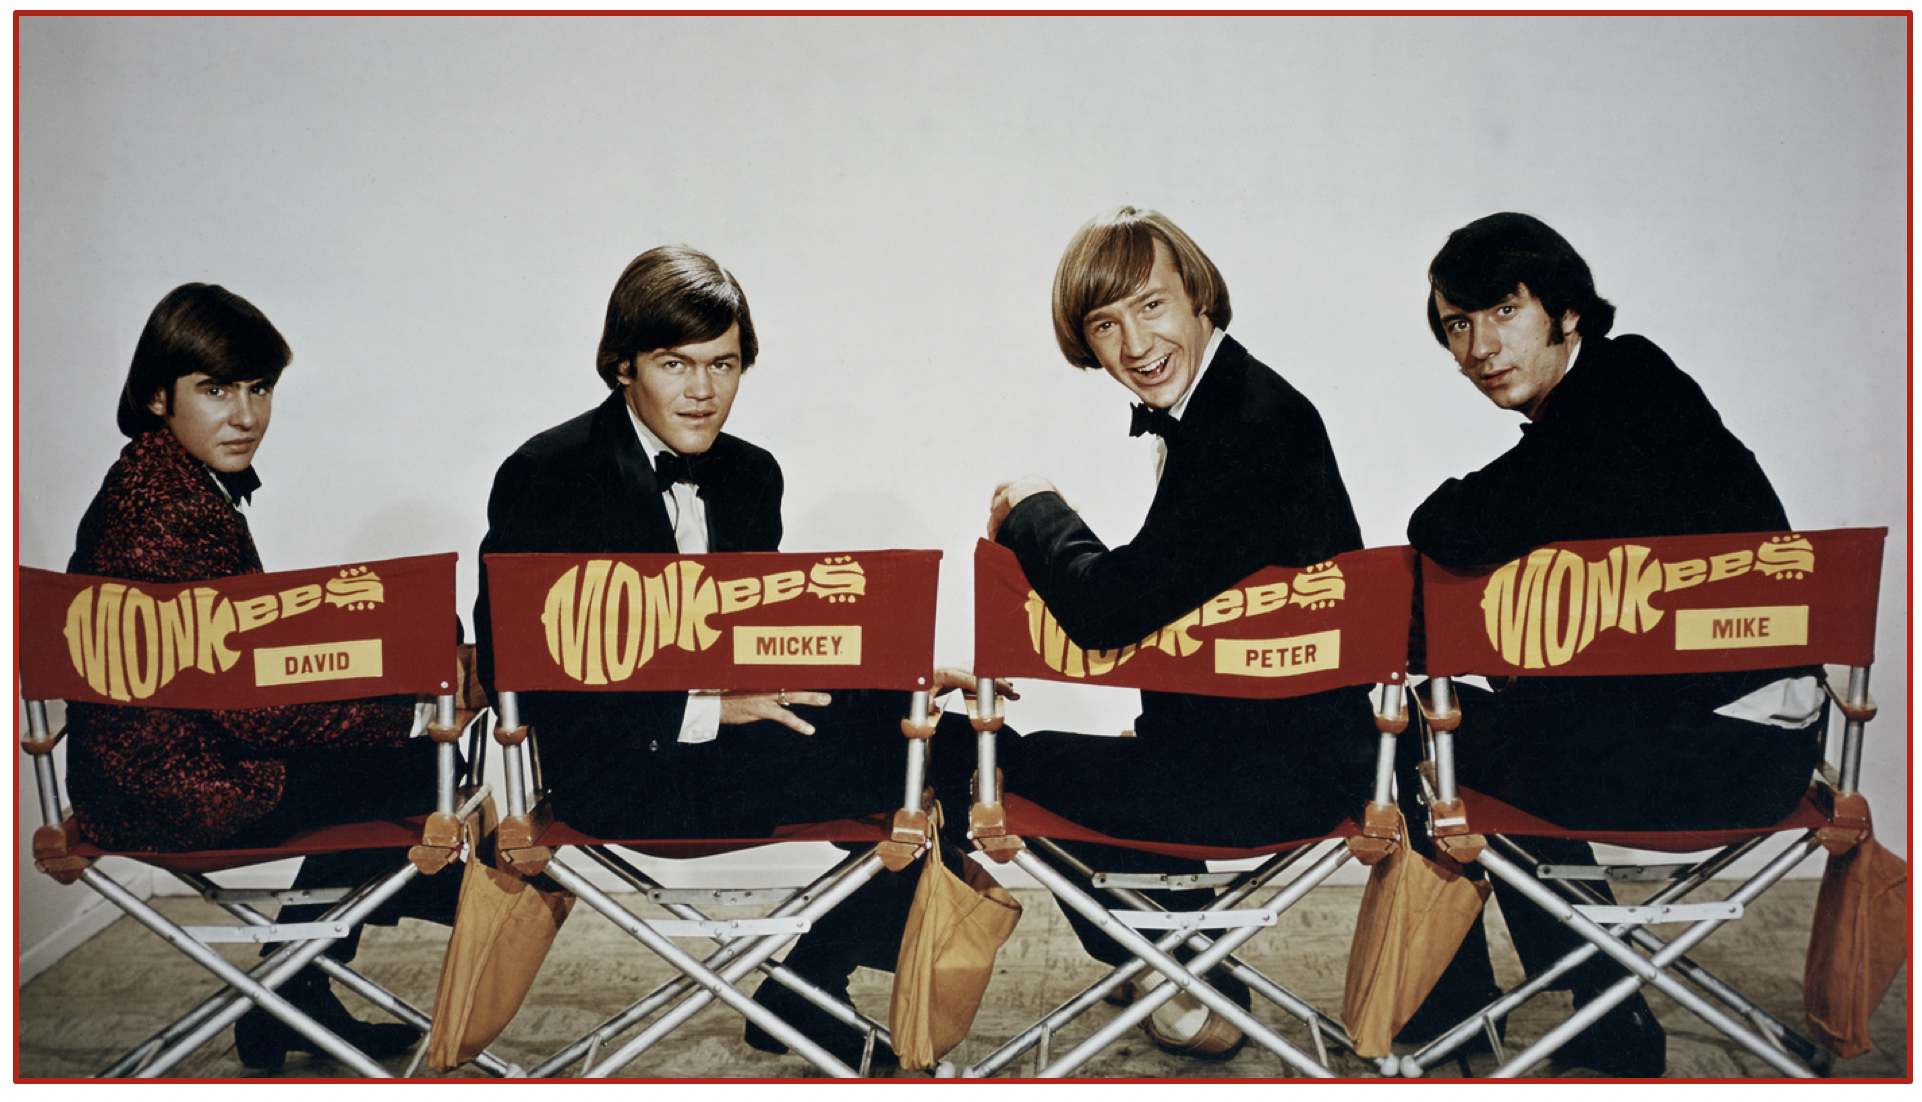 The Monkees Saw the Future 50 Years Before it Arrived in the